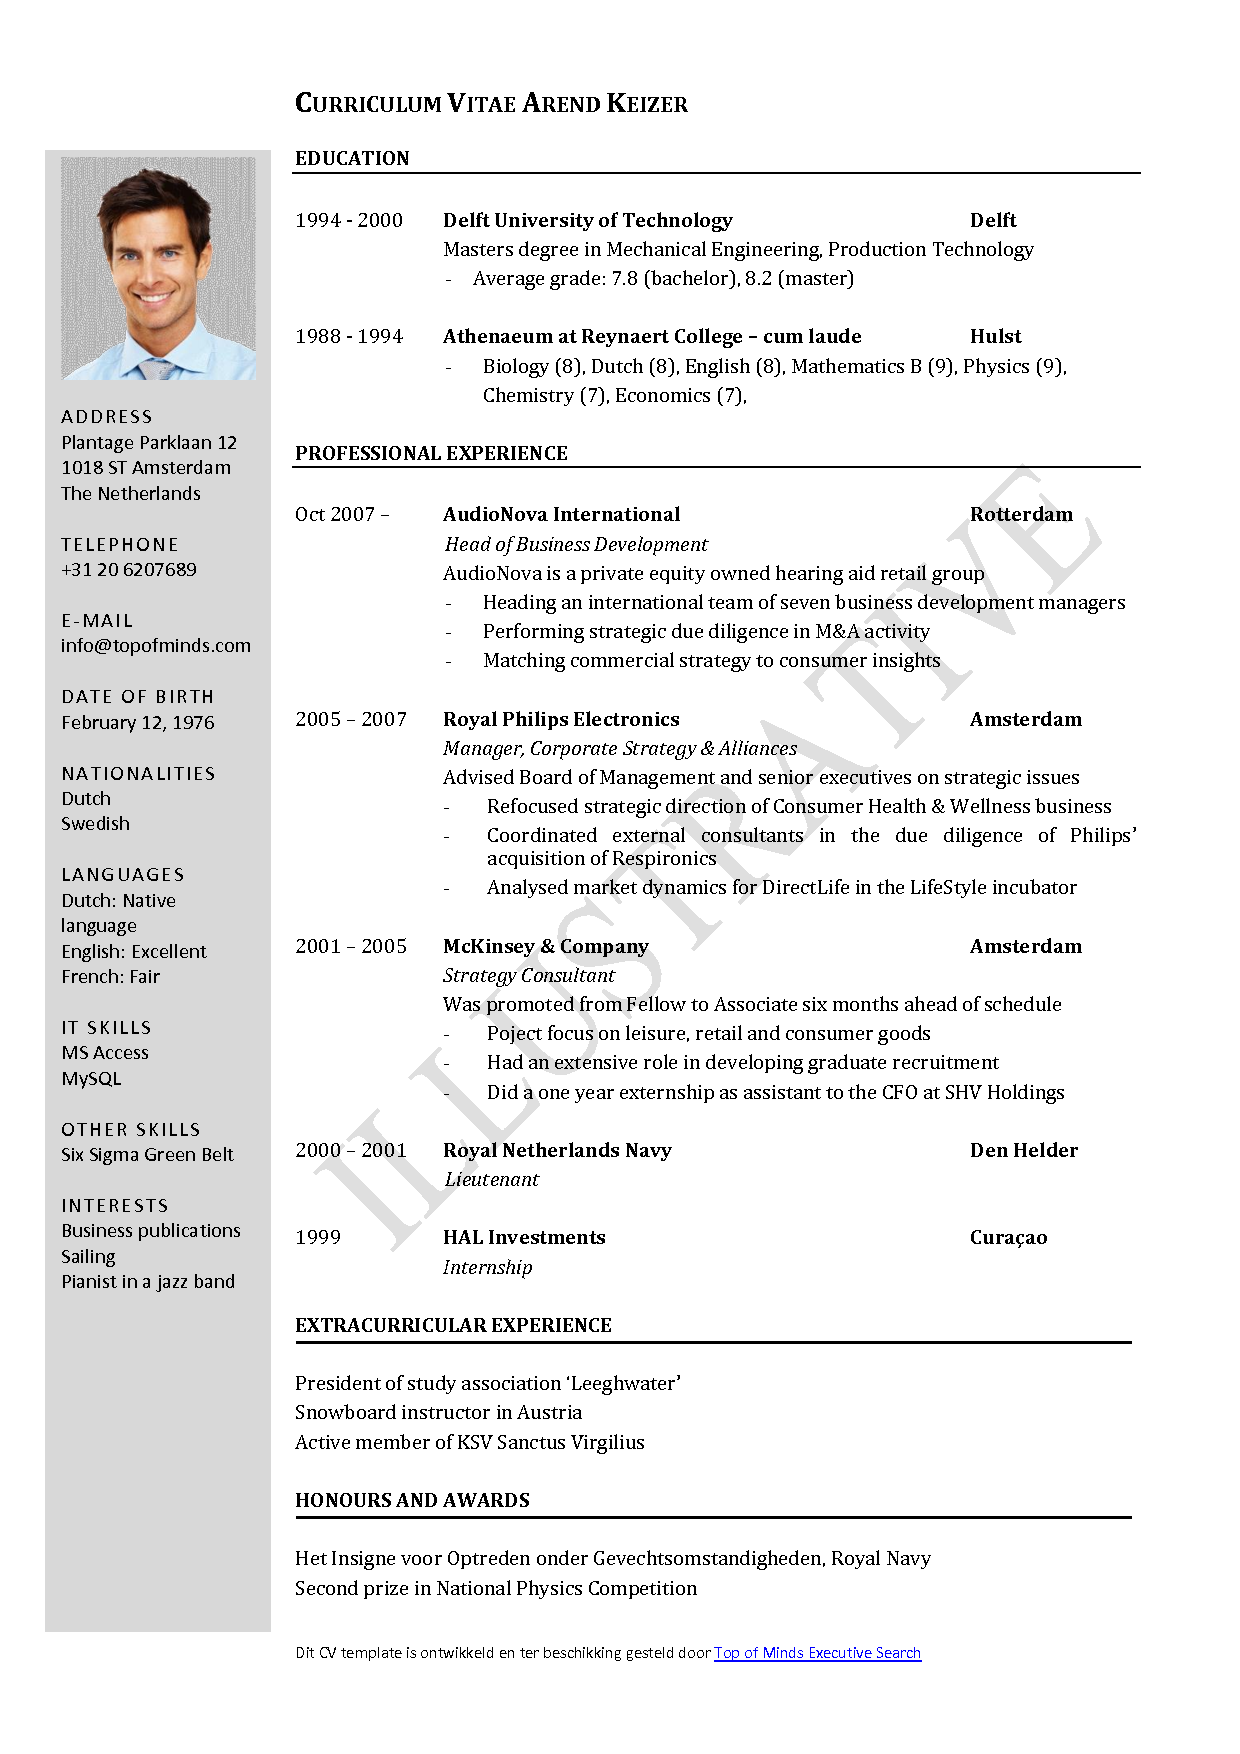 Free Curriculum Vitae Template Word | Download CV Template · Sample ...